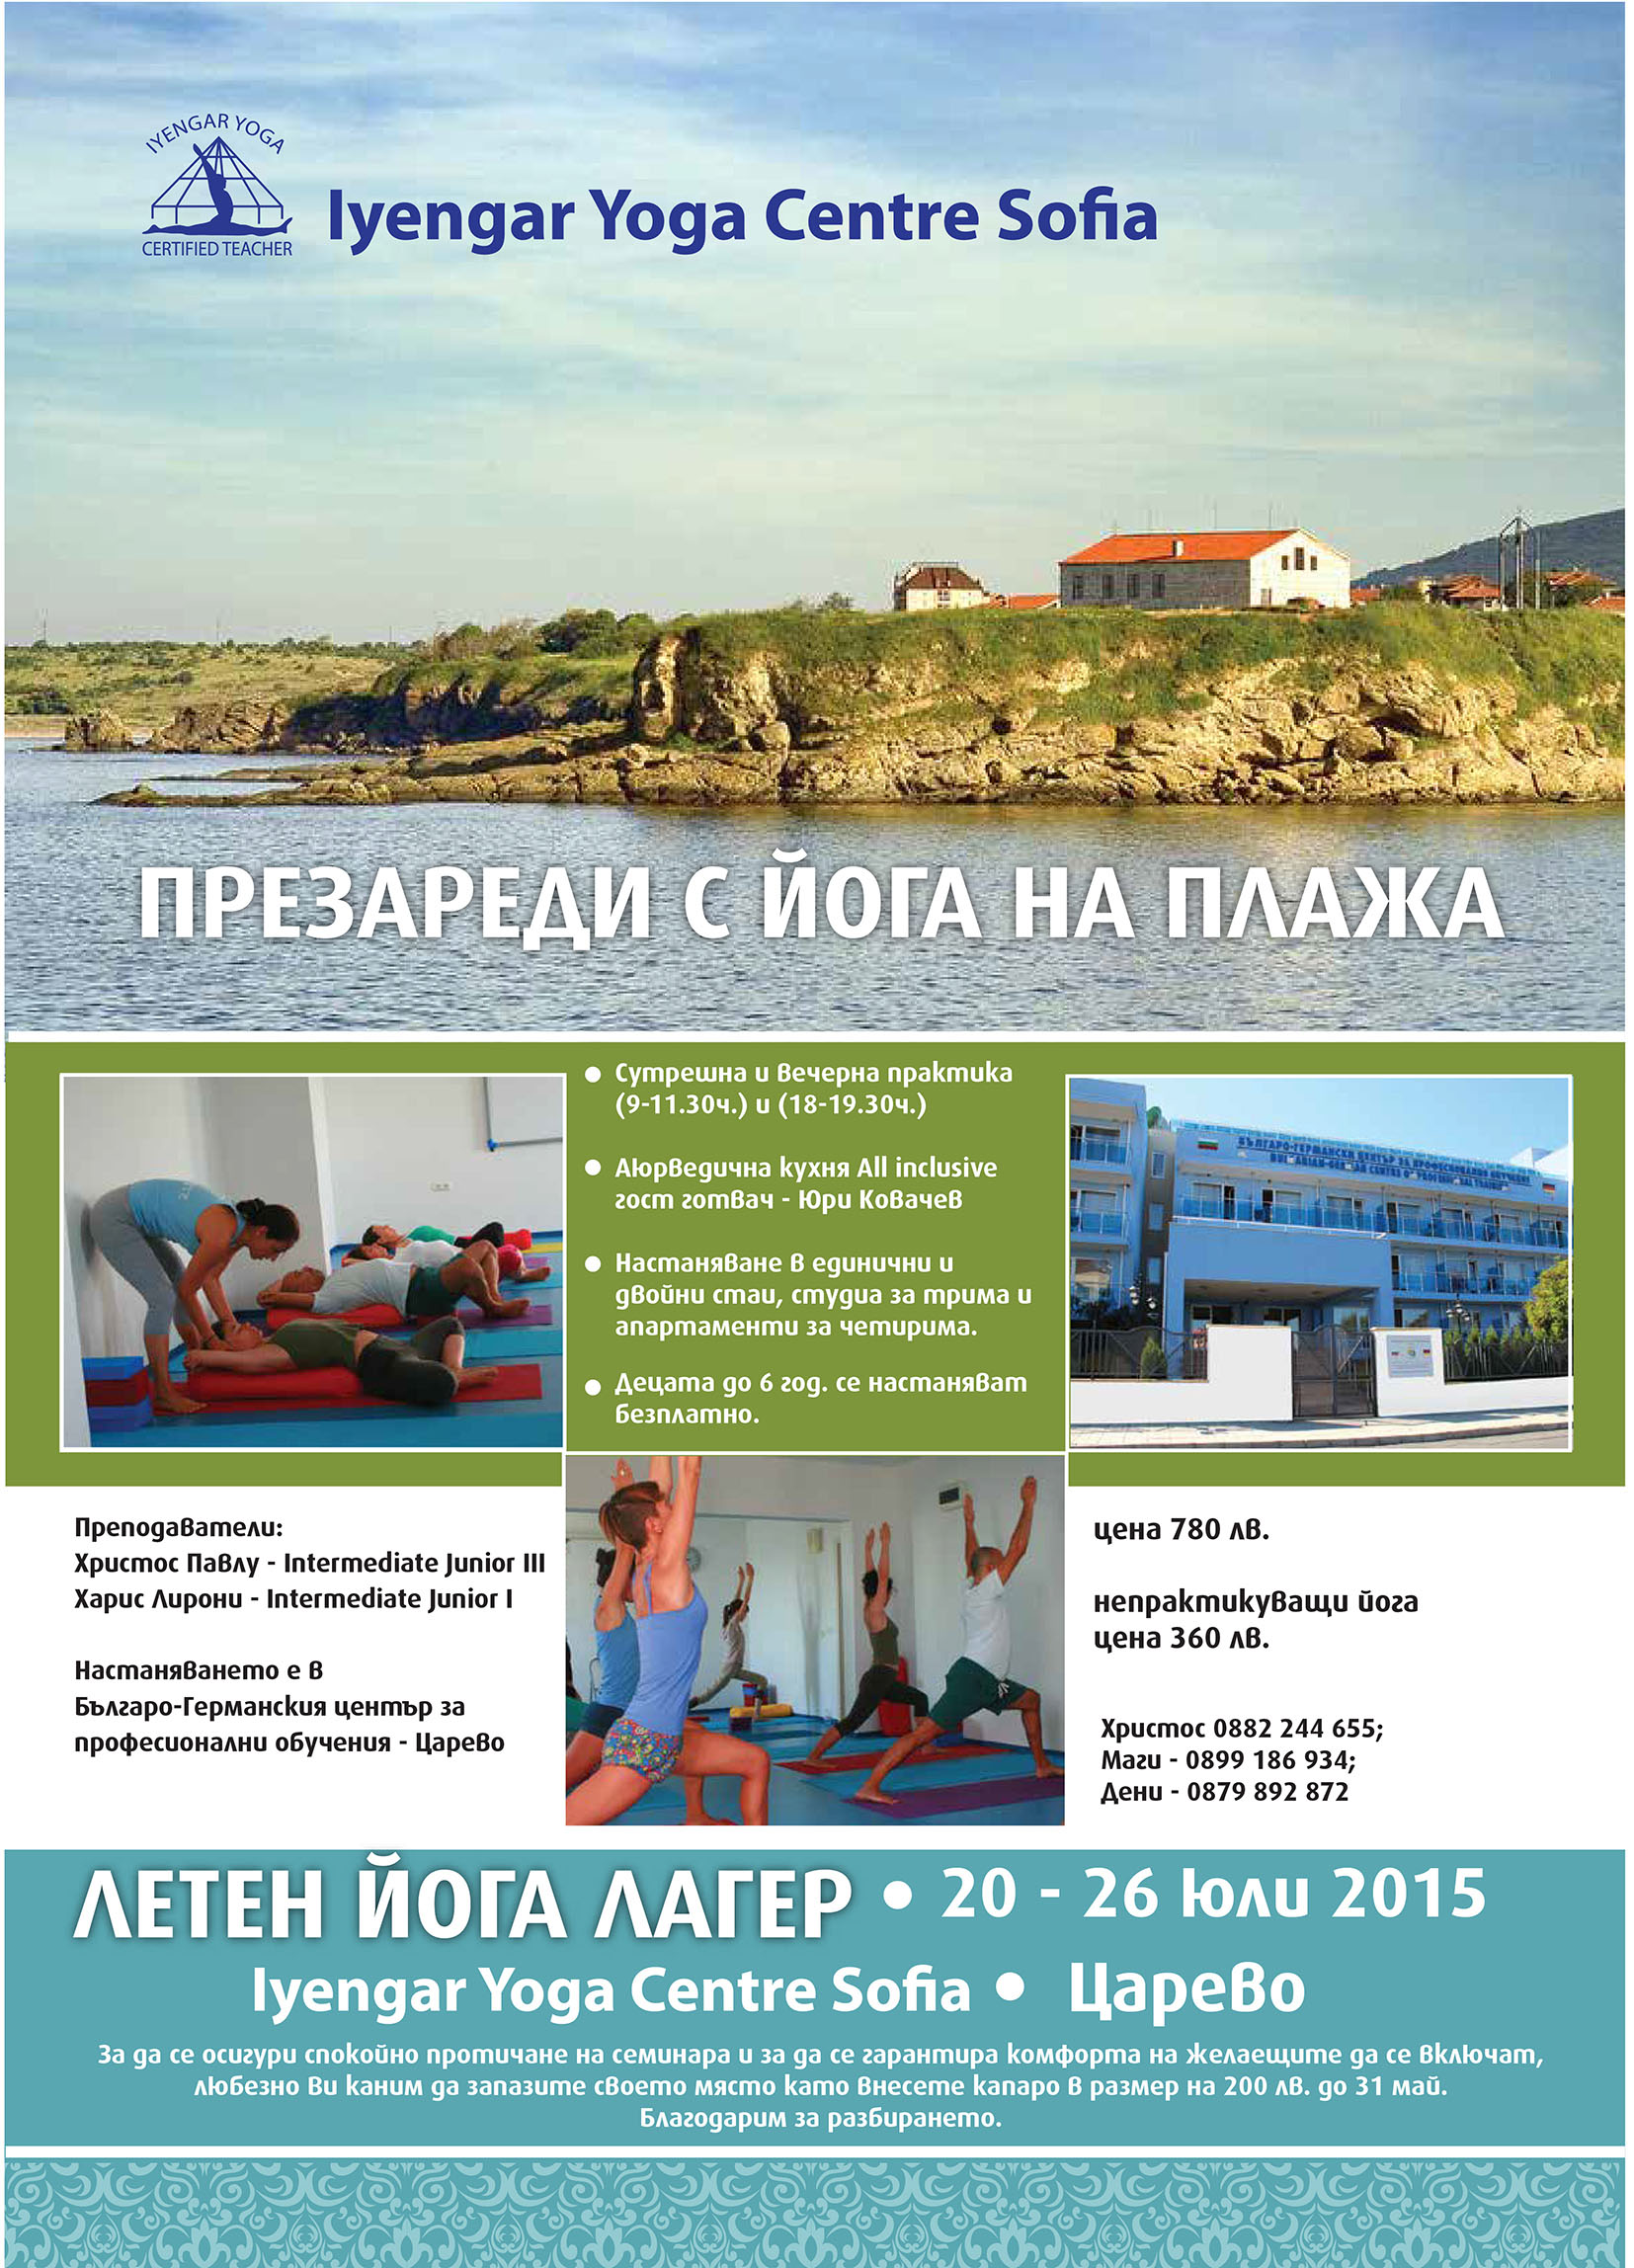 Iyengar Yoga Retreat Tsarevo, 2015